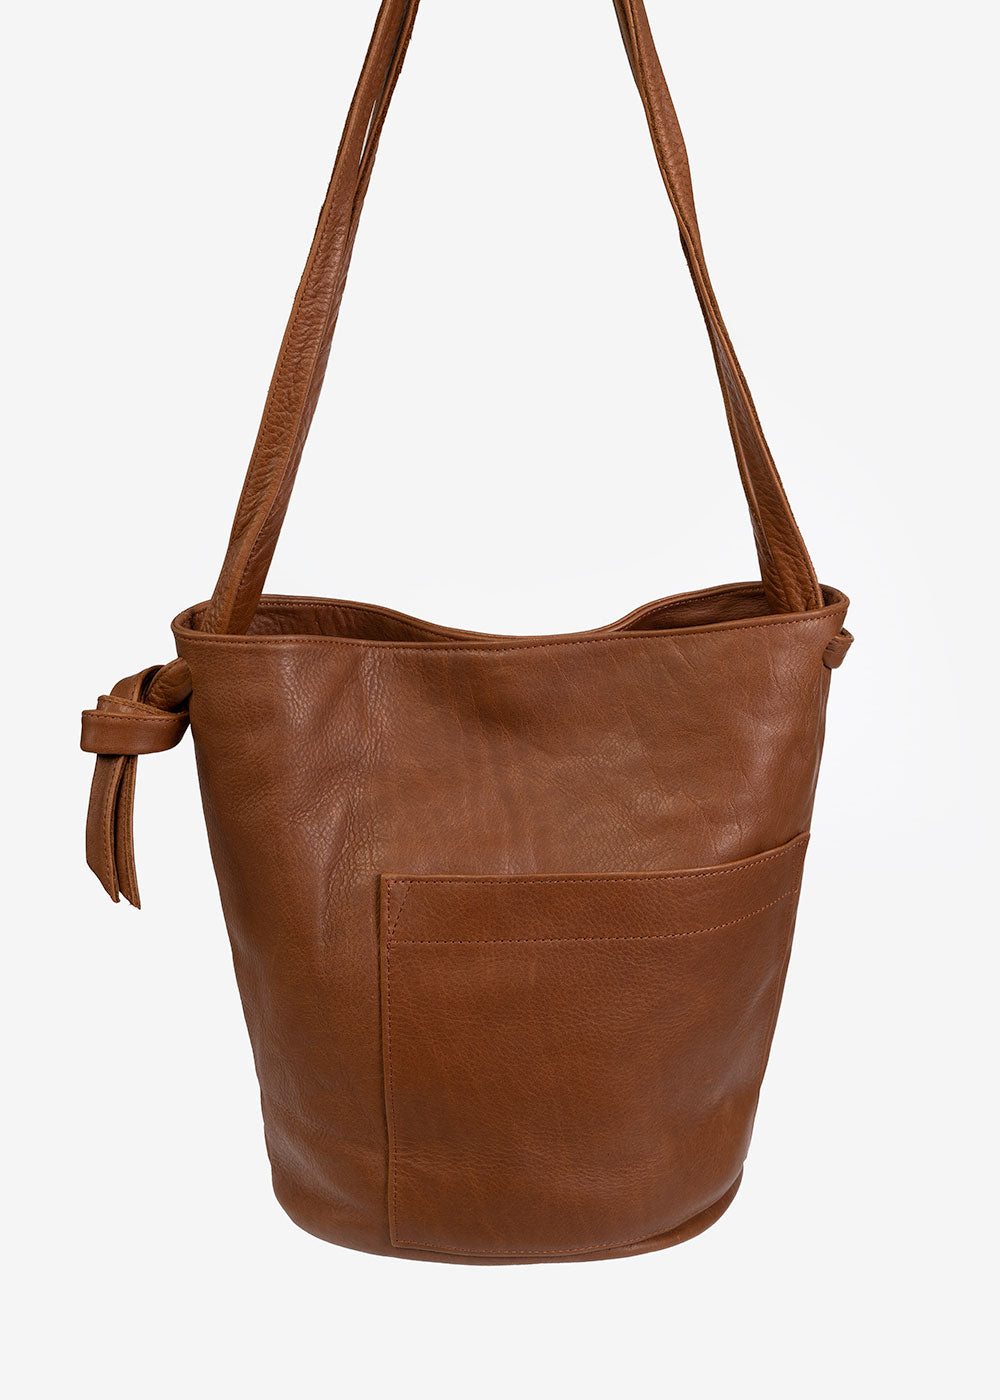 Erin Templeton Caramel Crossbody Bucket Bag — Shop sustainable fashion and slow fashion at New Classics Studios